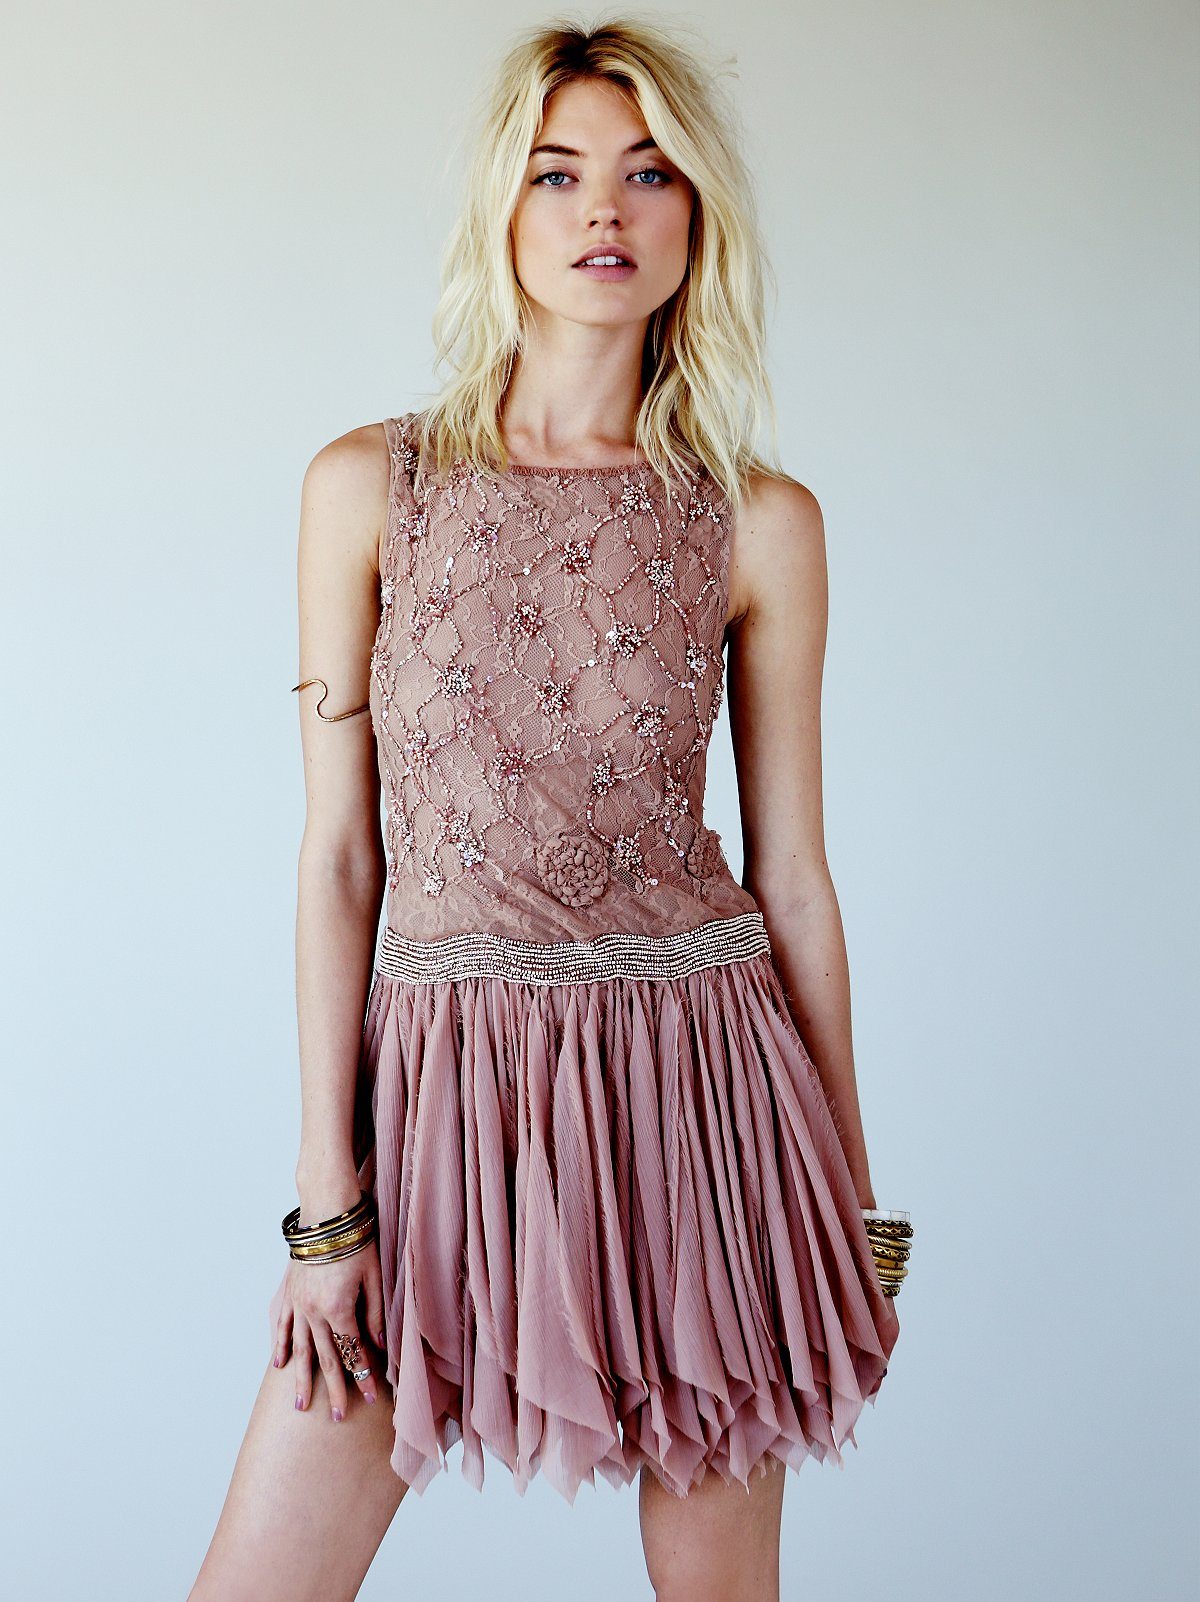 Samantha Embellished Dress